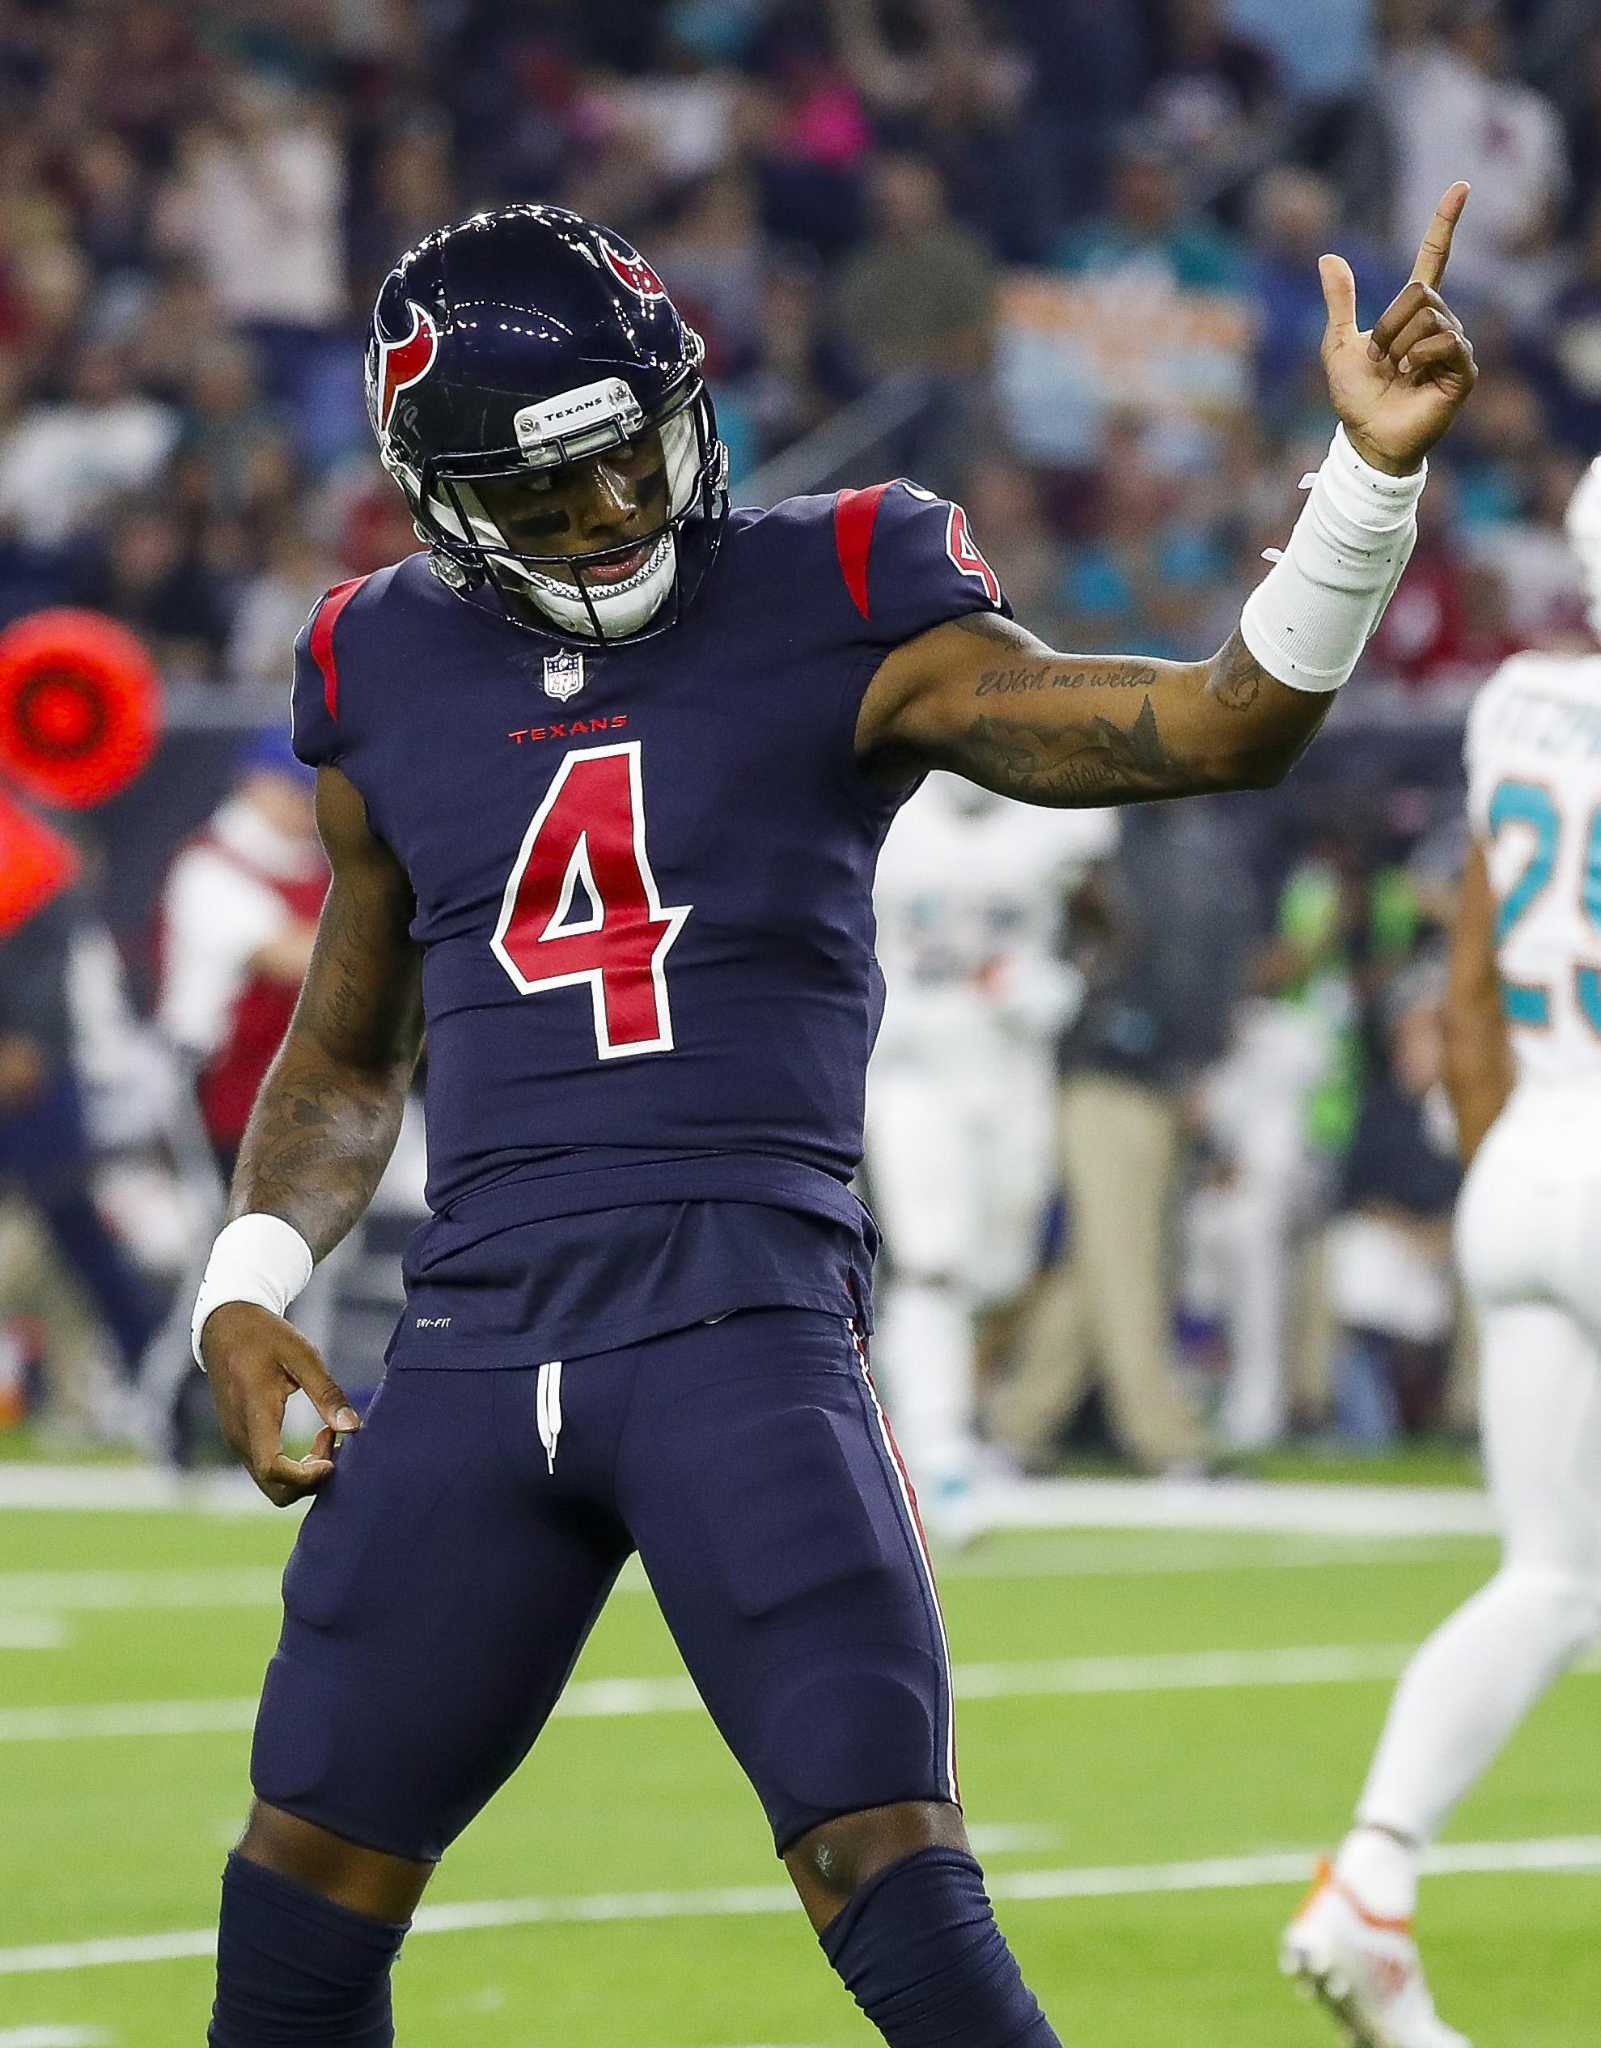 726c6ab0f Texans  Deshaun Watson does a victory lap around Dolphins  Brock Osweiler